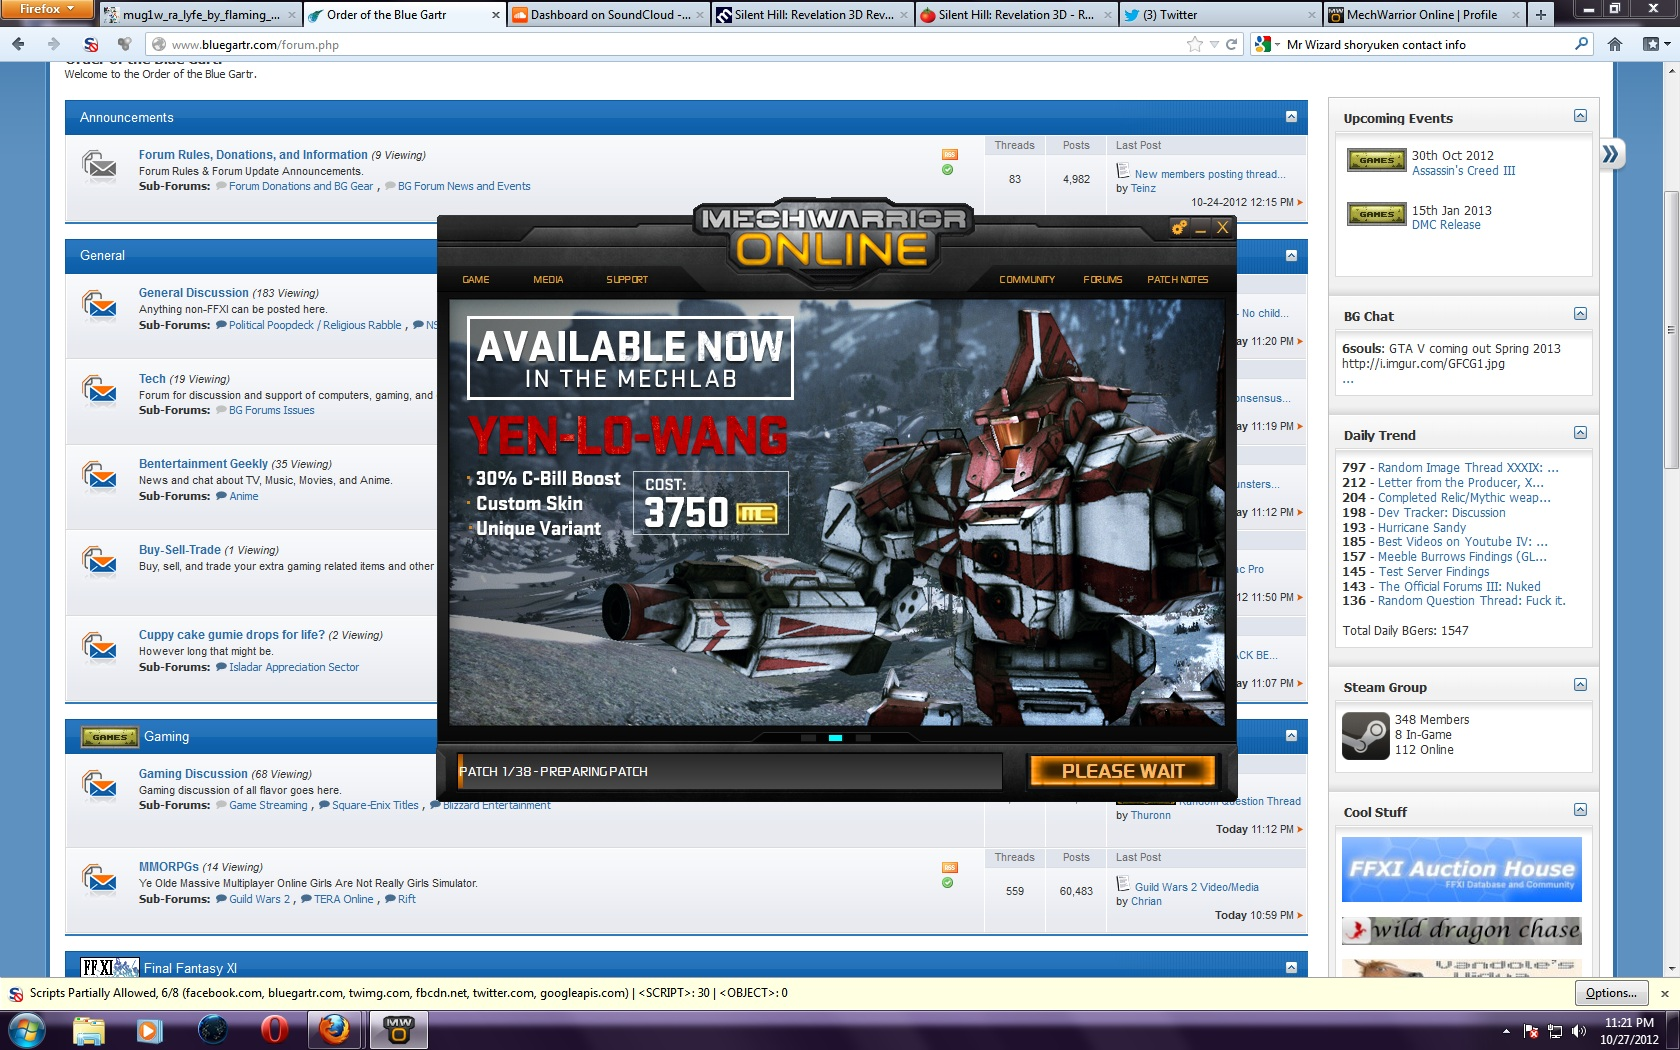 6souls games edition money clan mechs limited much catother 210 chasis access updating promptly getting stomped about which matches then stop playing week after this daily only purchase with since necro online bump released officially game mechwarrior basis freakin those 500 sold package surprise that skins